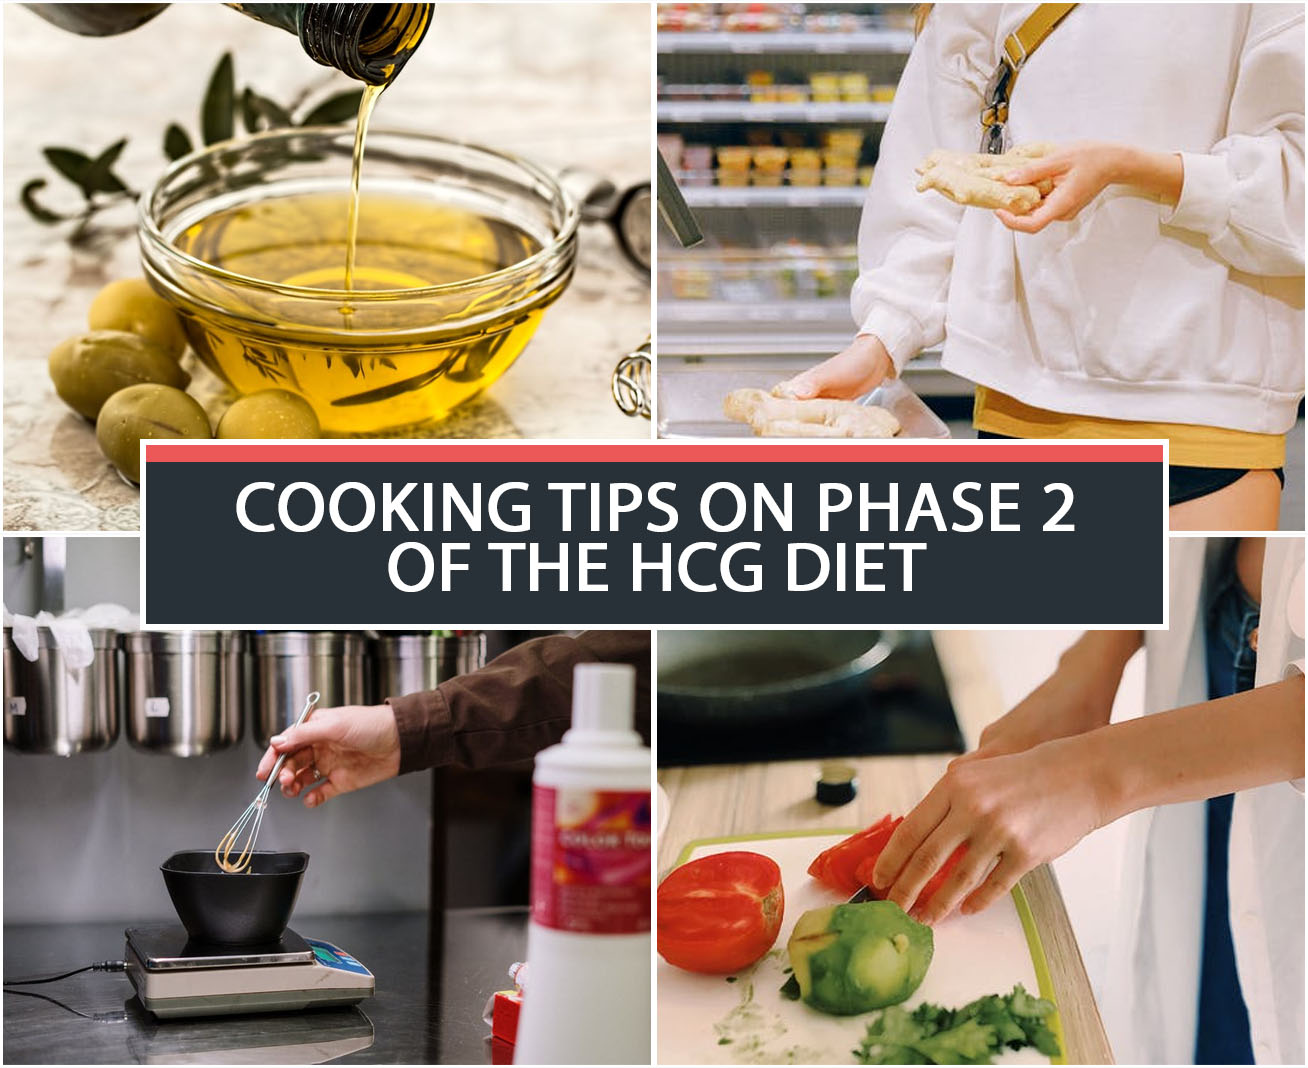 COOKING TIPS ON PHASE 2 OF THE HCG DIET